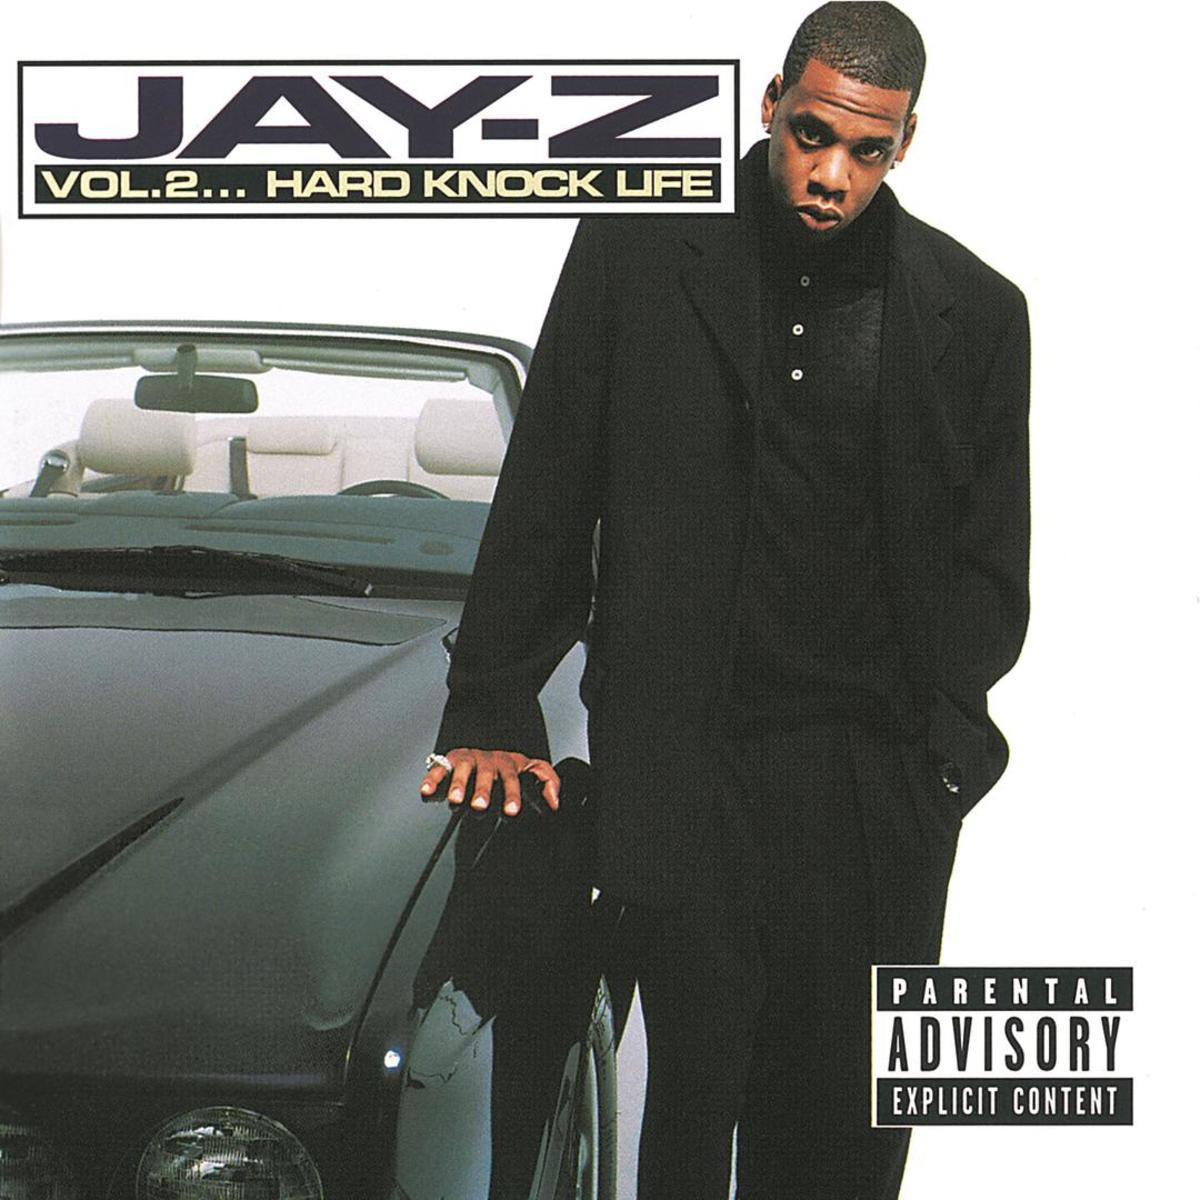 jay-z-hard-knock-life-vol2